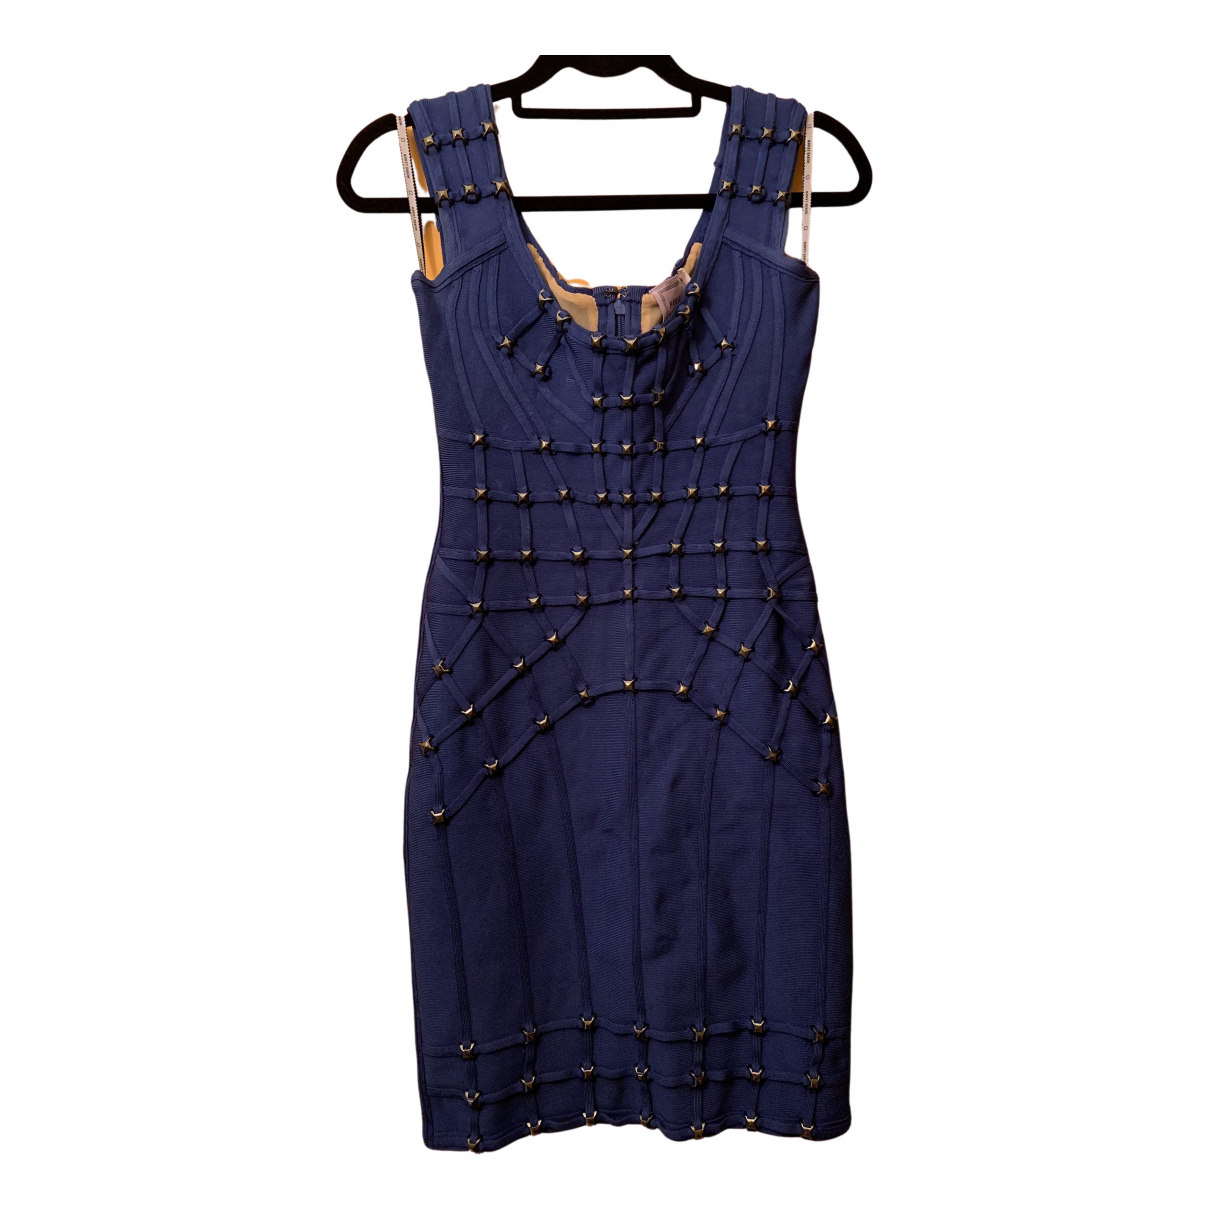 Herve Leger \N Blue dress for Women 36 FR